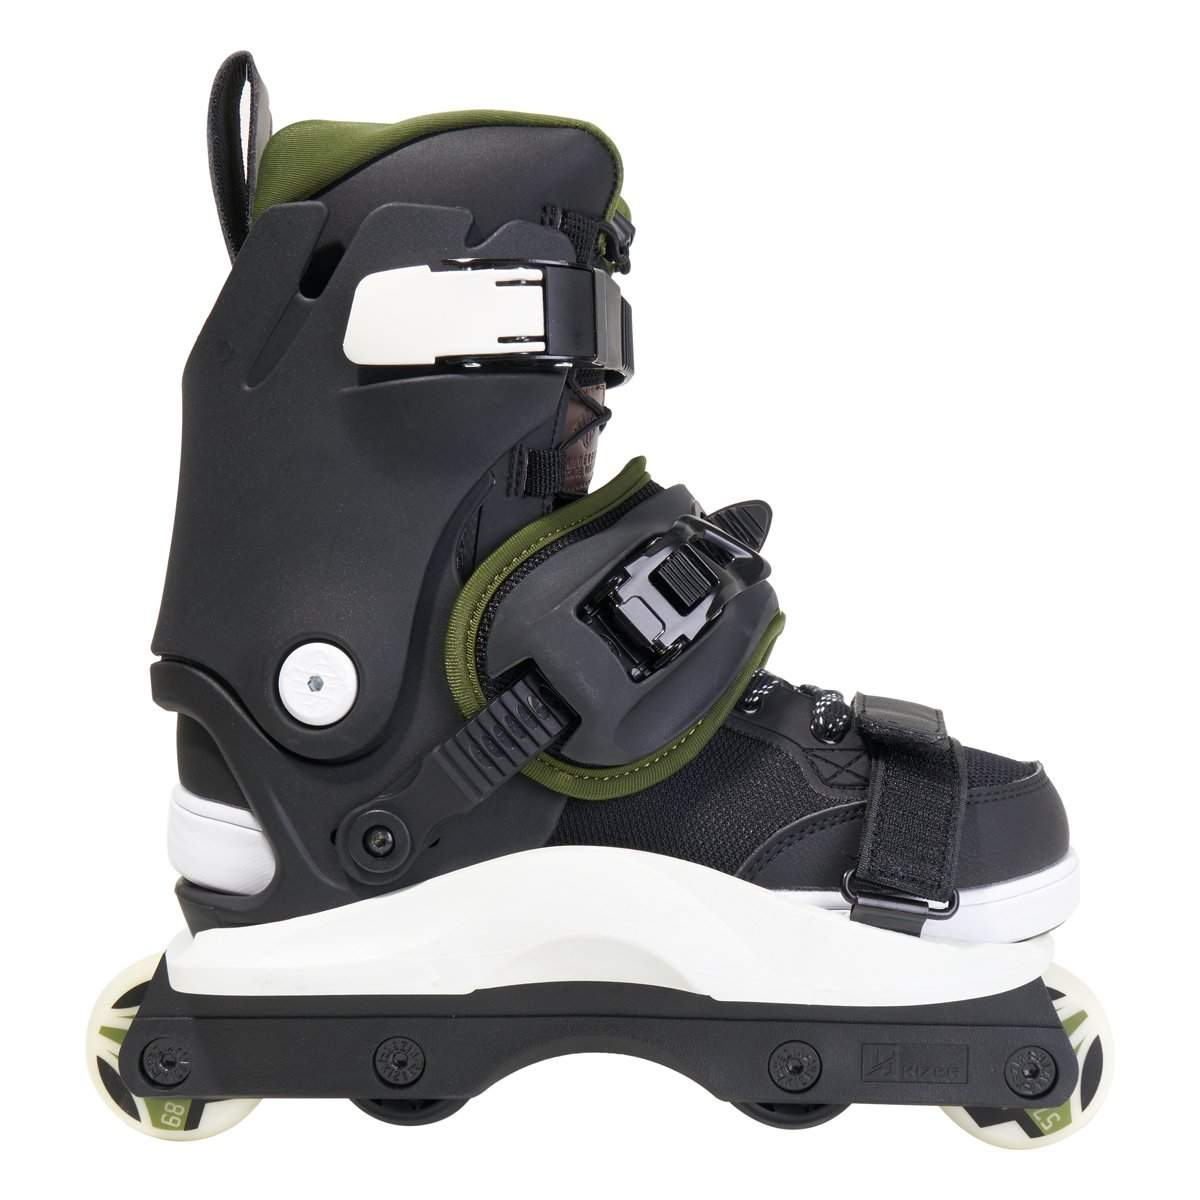 19f143e24cc Loco | Experts in Inline Skates, Roller Blades and Roller Skates